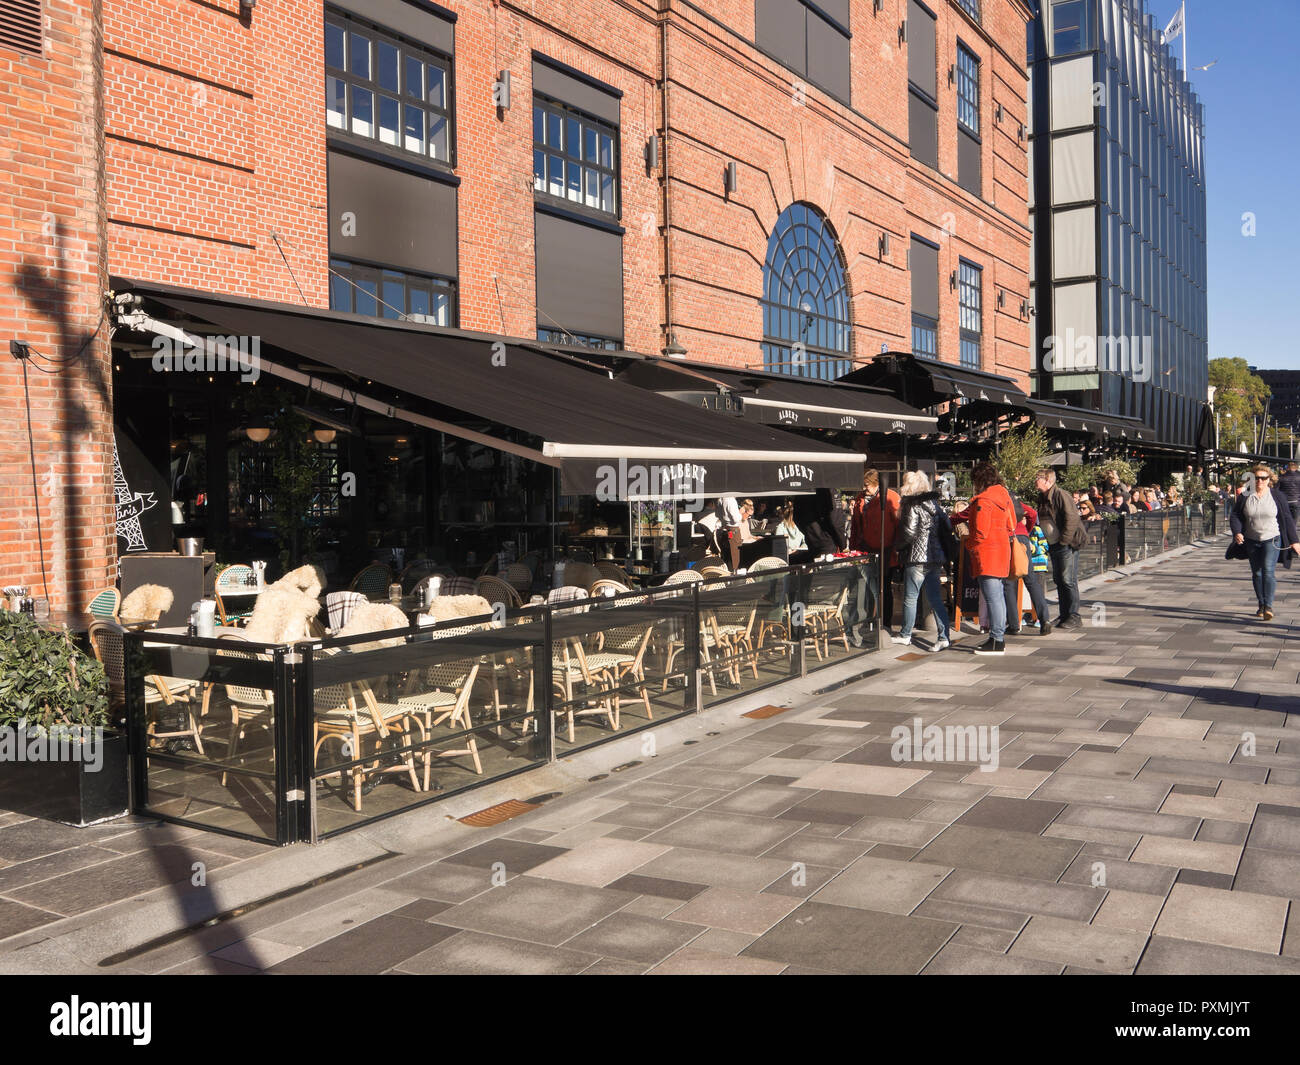 The Aker Brygge Area In The Centre Of Oslo Norway Has Many